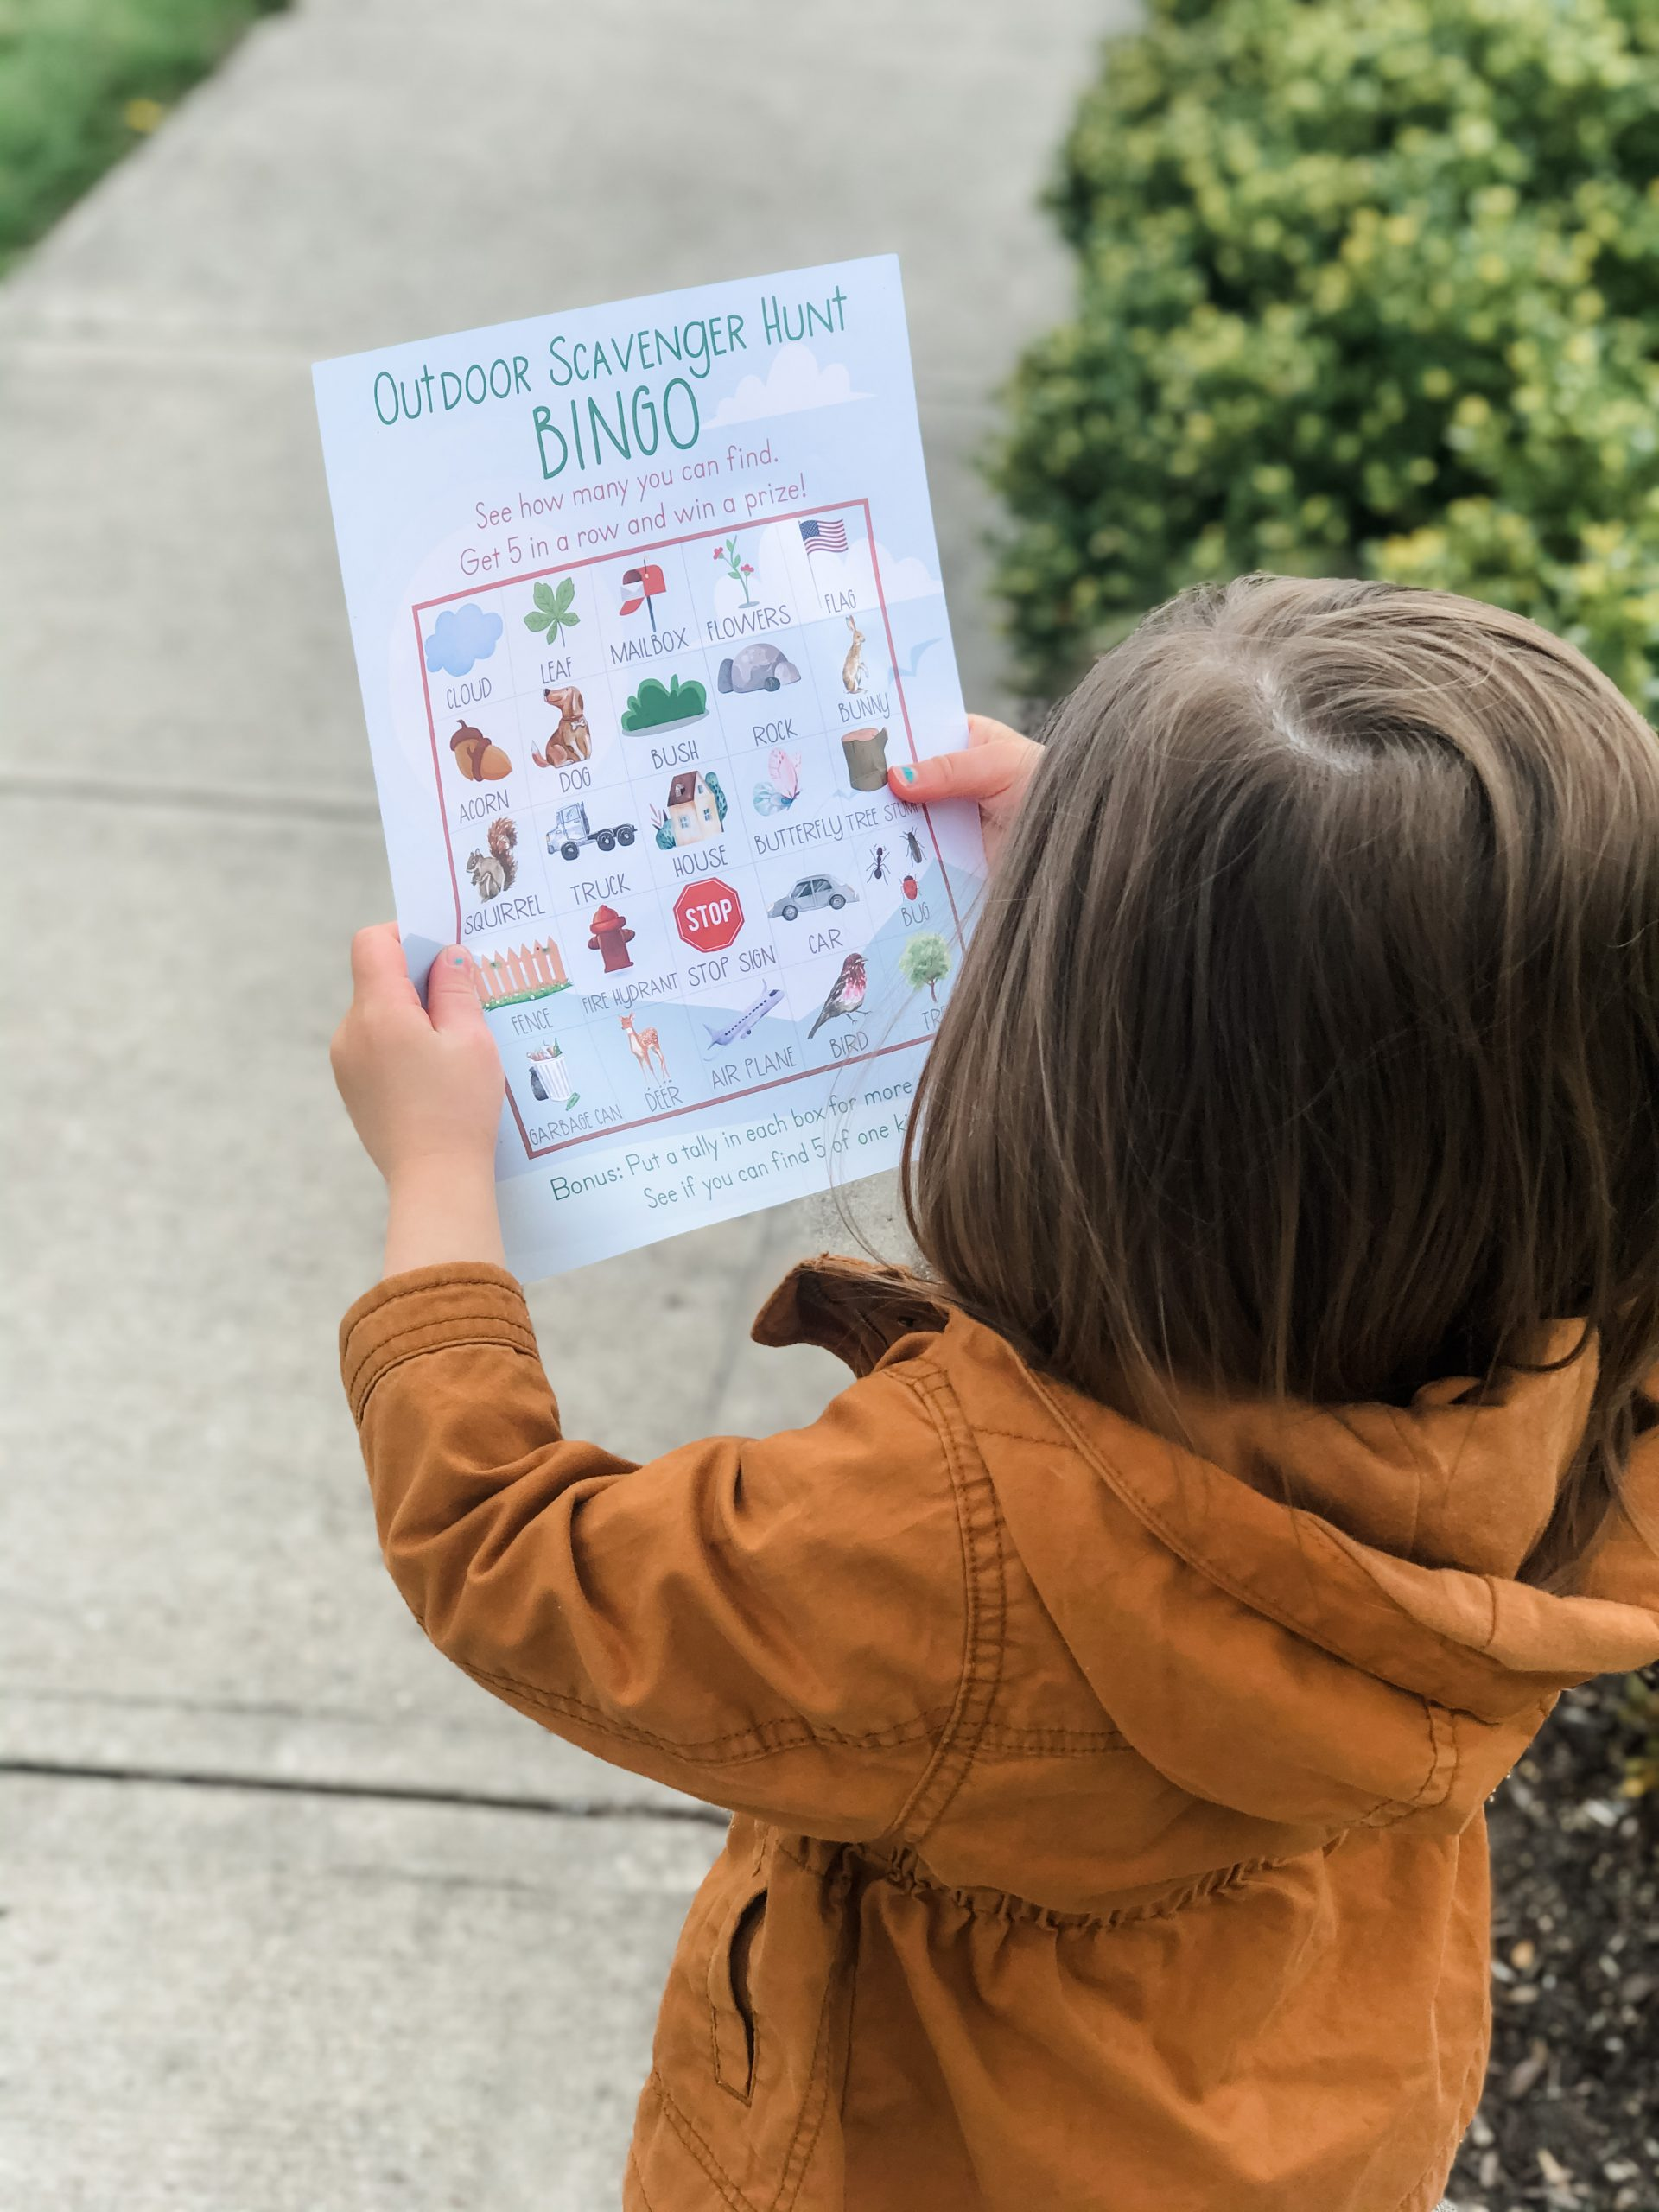 Use this free outdoor scavenger hunt activity for your toddler or preschooler to learn new vocabulary words, concepts, and language while outside on a walk.